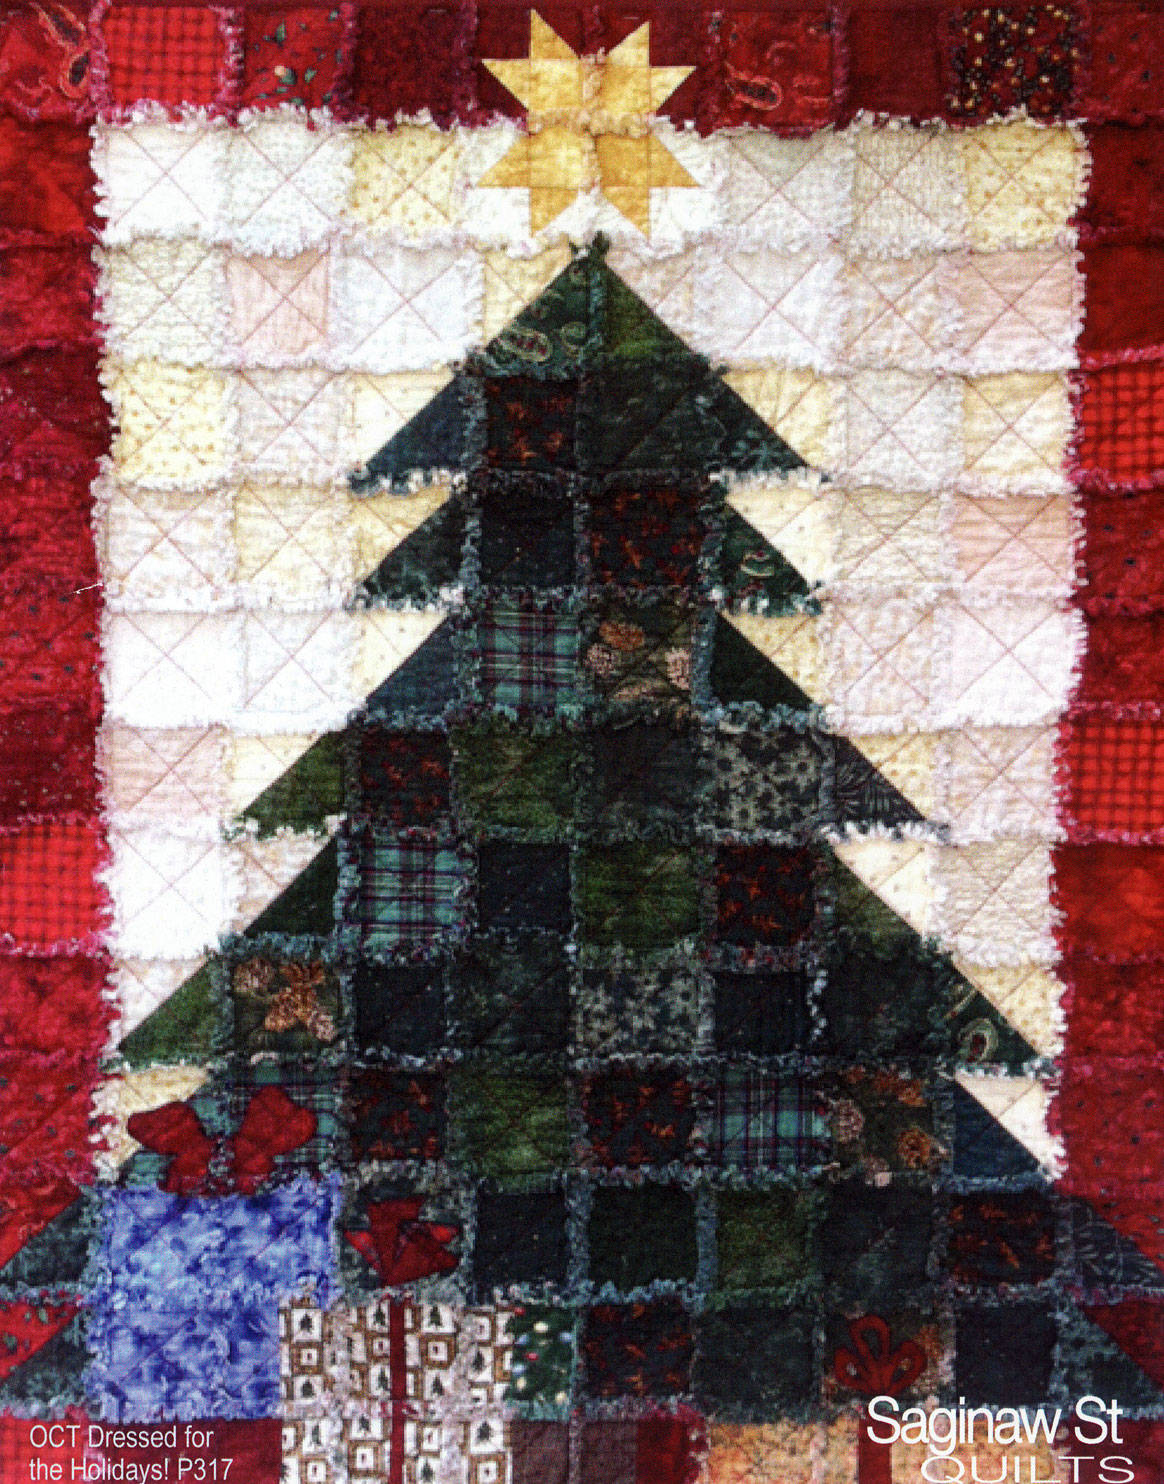 o-christmas-tree-dressed-for-the-holidays-sewing-pattern-Saginaw-st-quilts-1